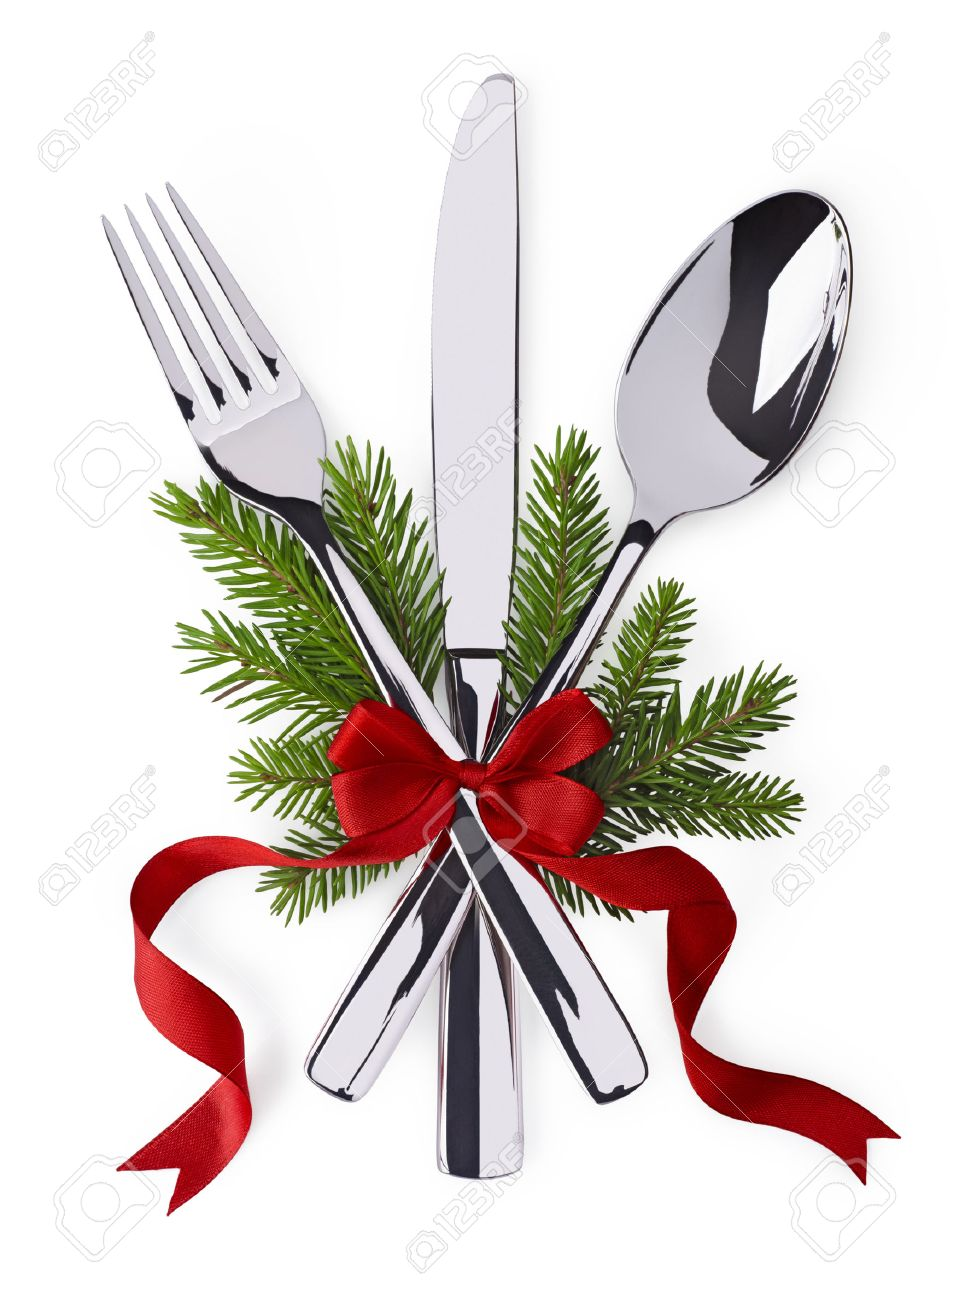 christmas and new year silverware for celebration as invitation christmas and new year silverware for celebration as invitation design background stock photo 31036412